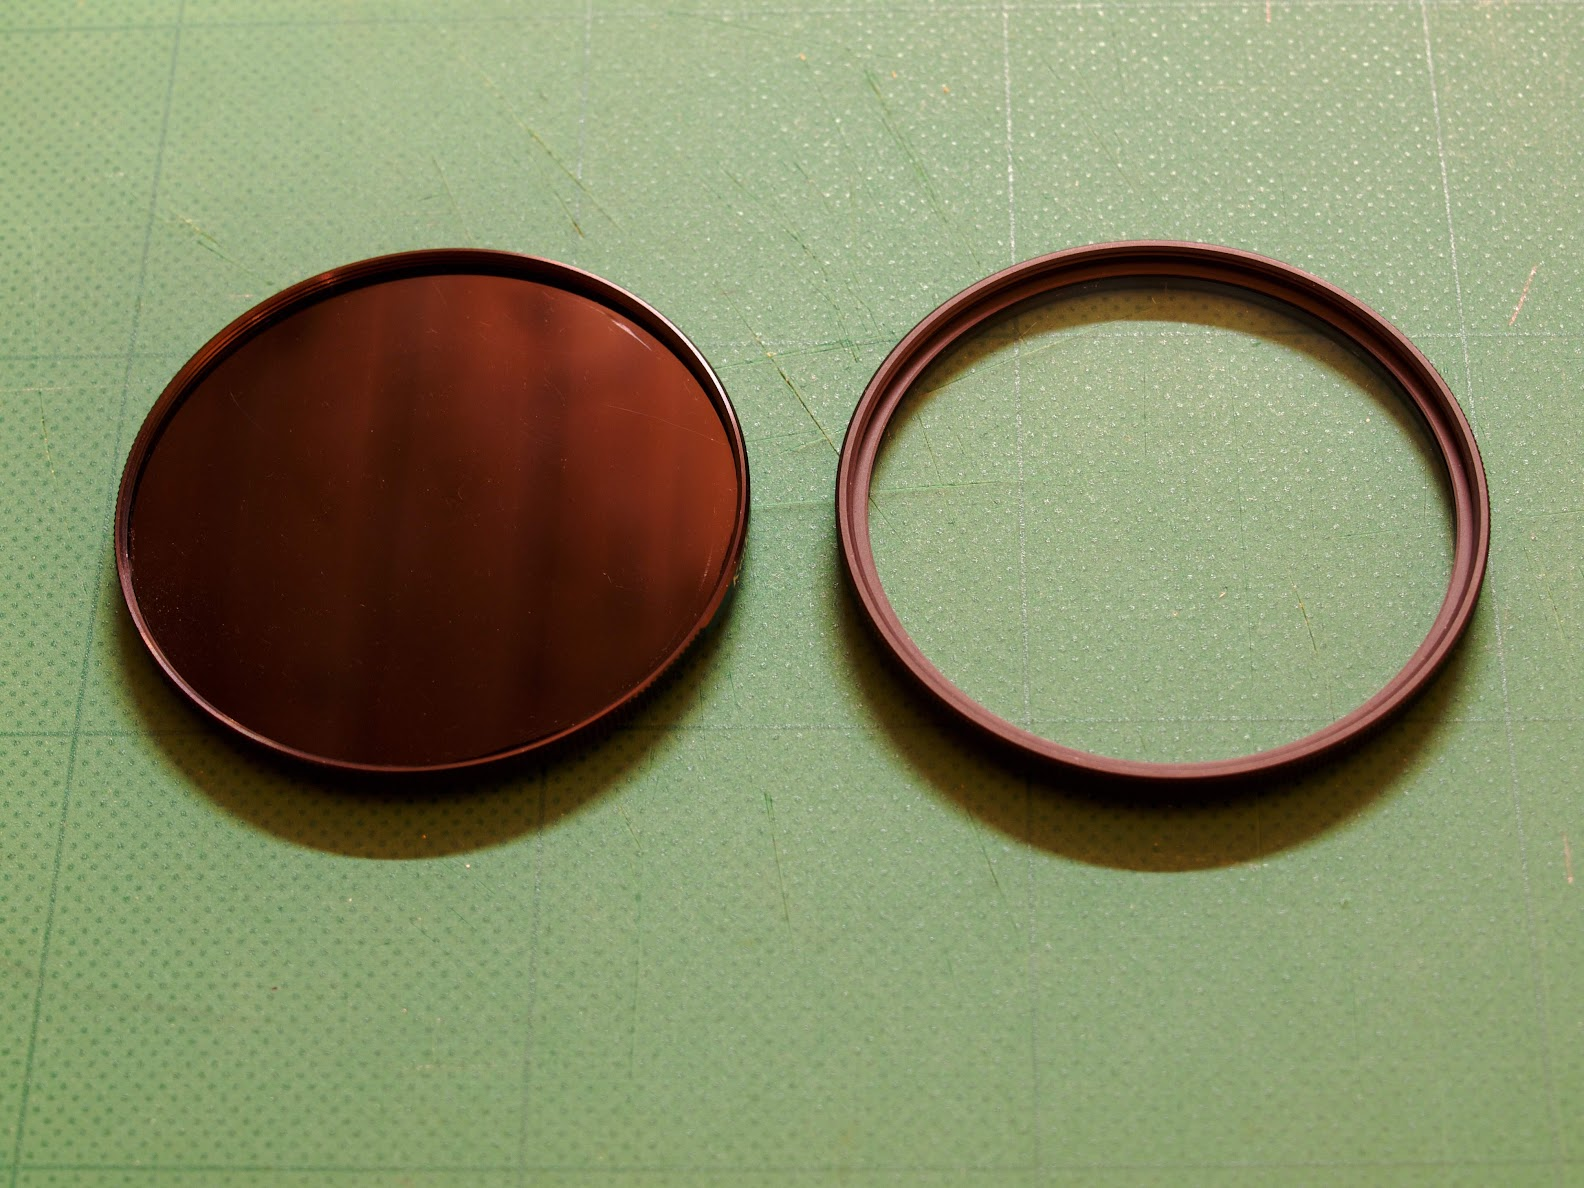 DIY Neutral Density Filter